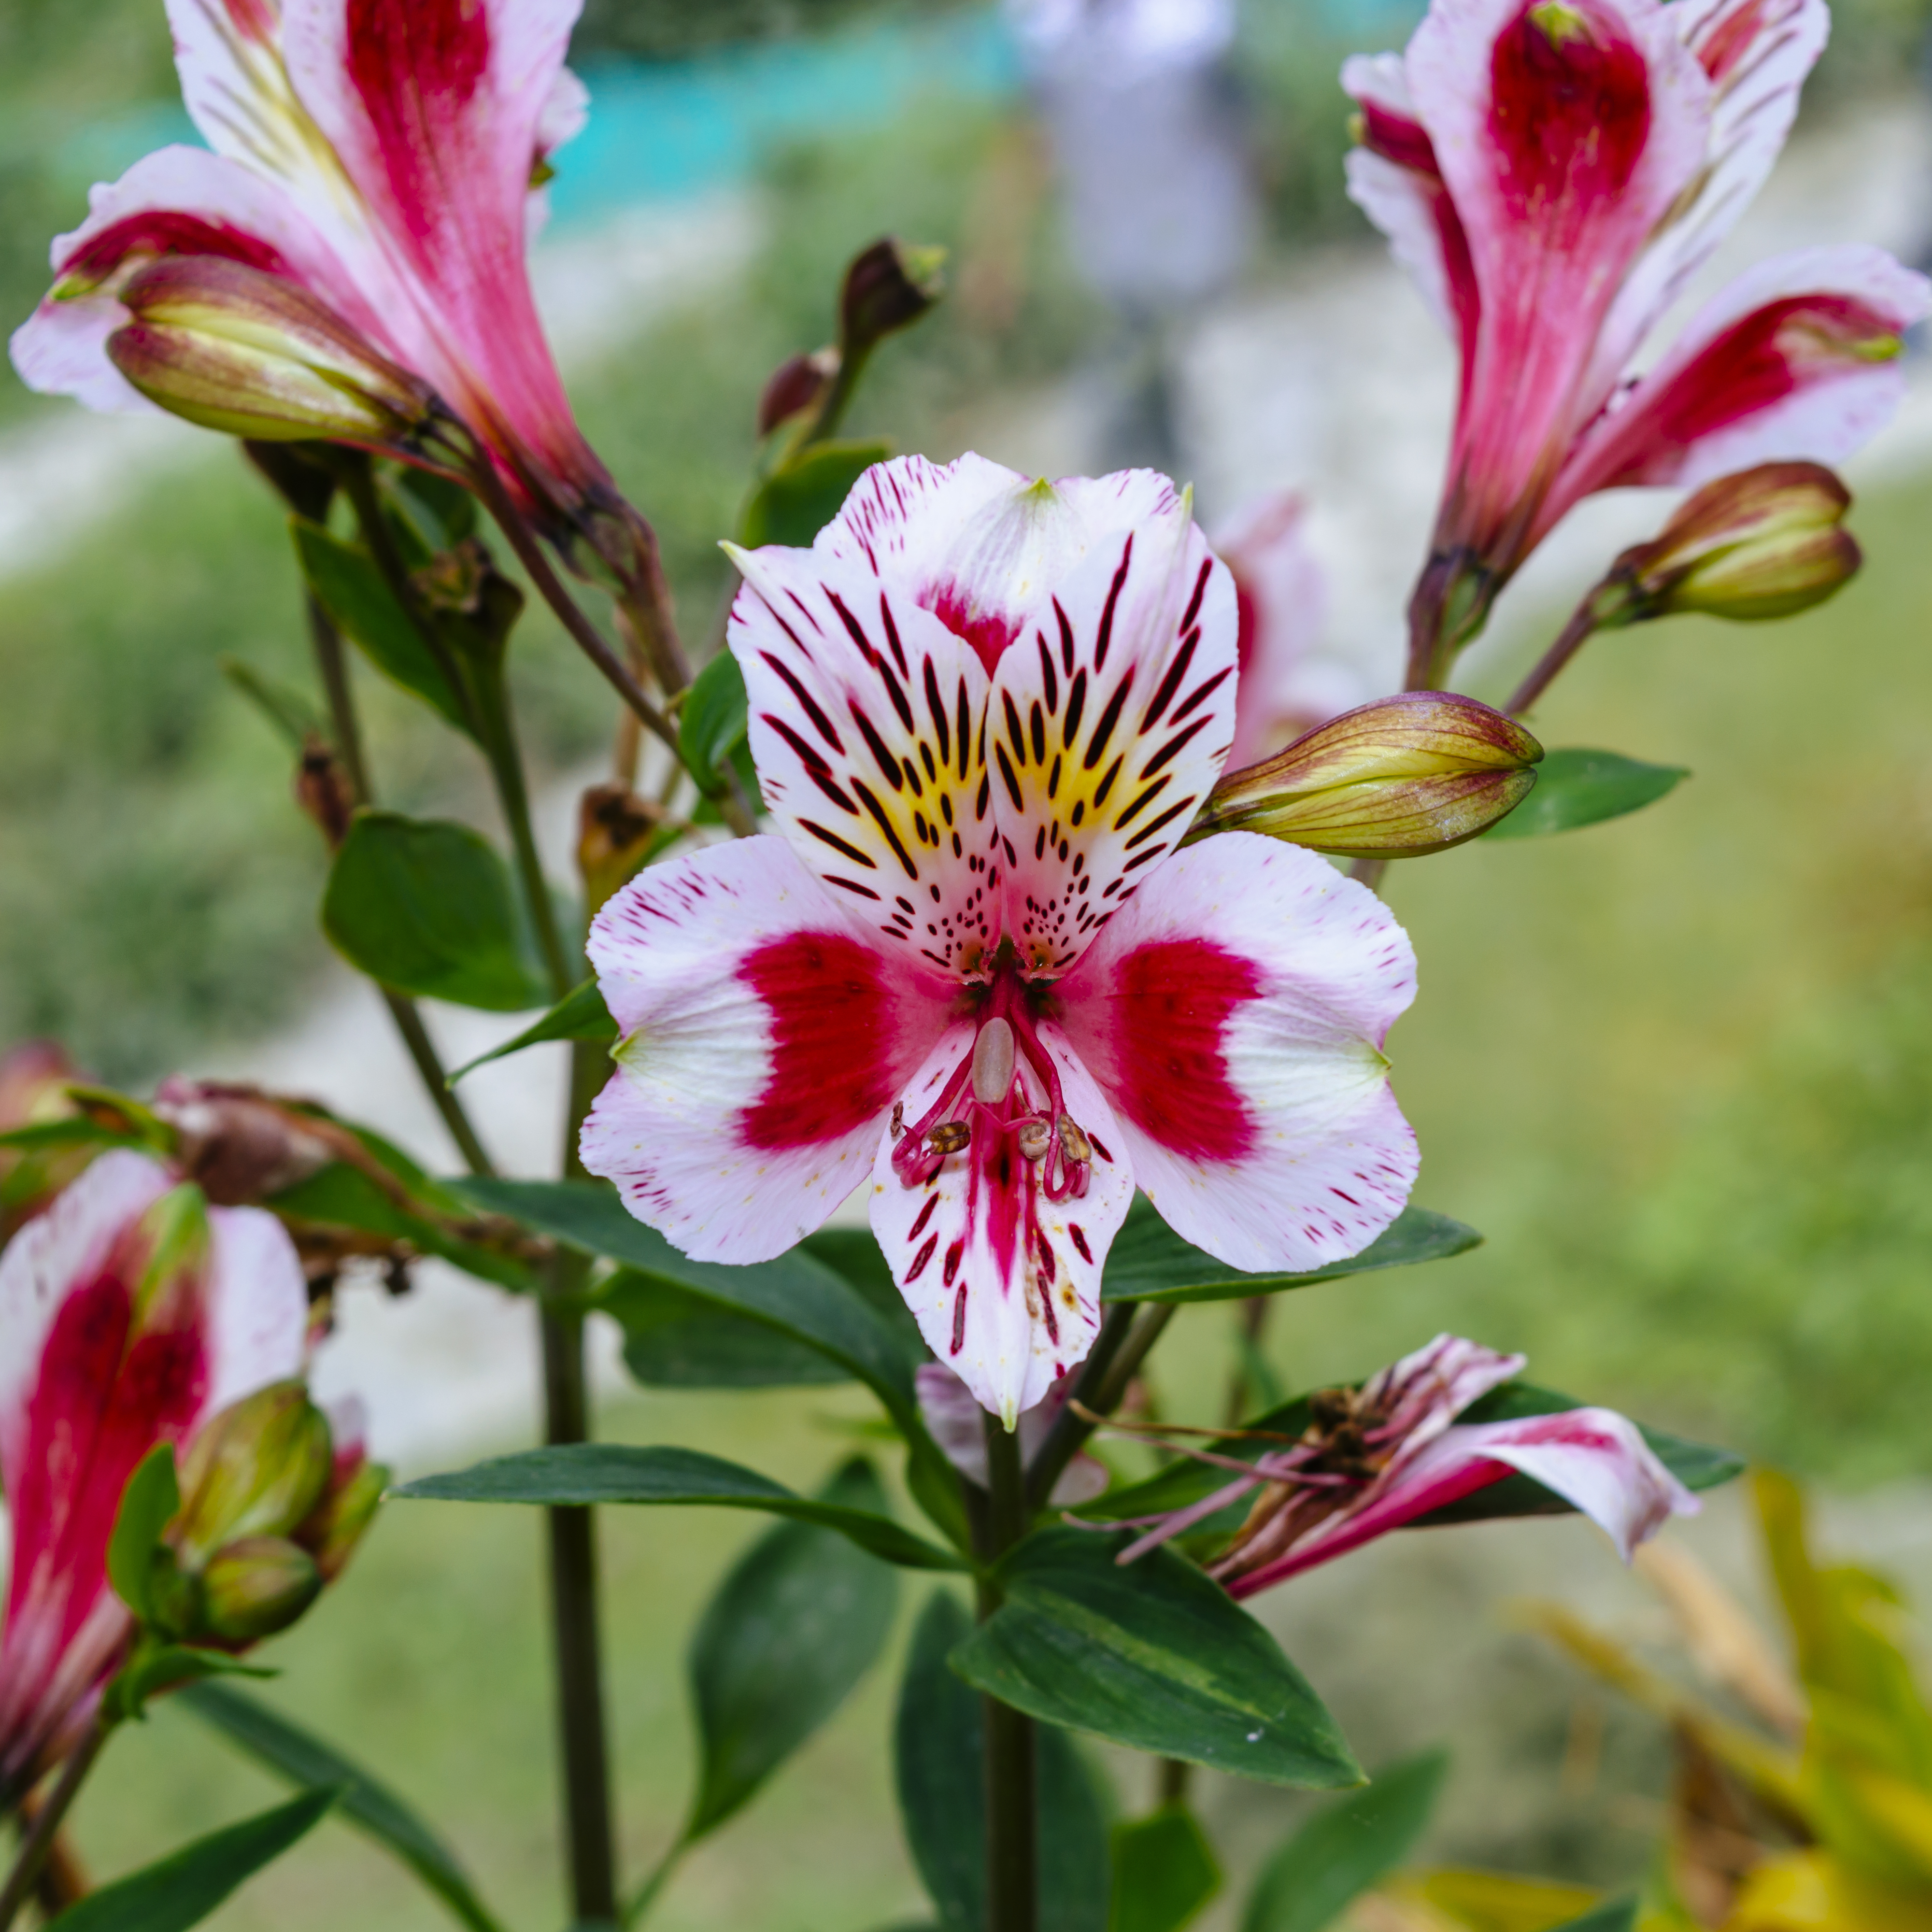 File Alstroemeria Or Peruvian Lily Or Lily Of The Incas Jpg Wikimedia Commons